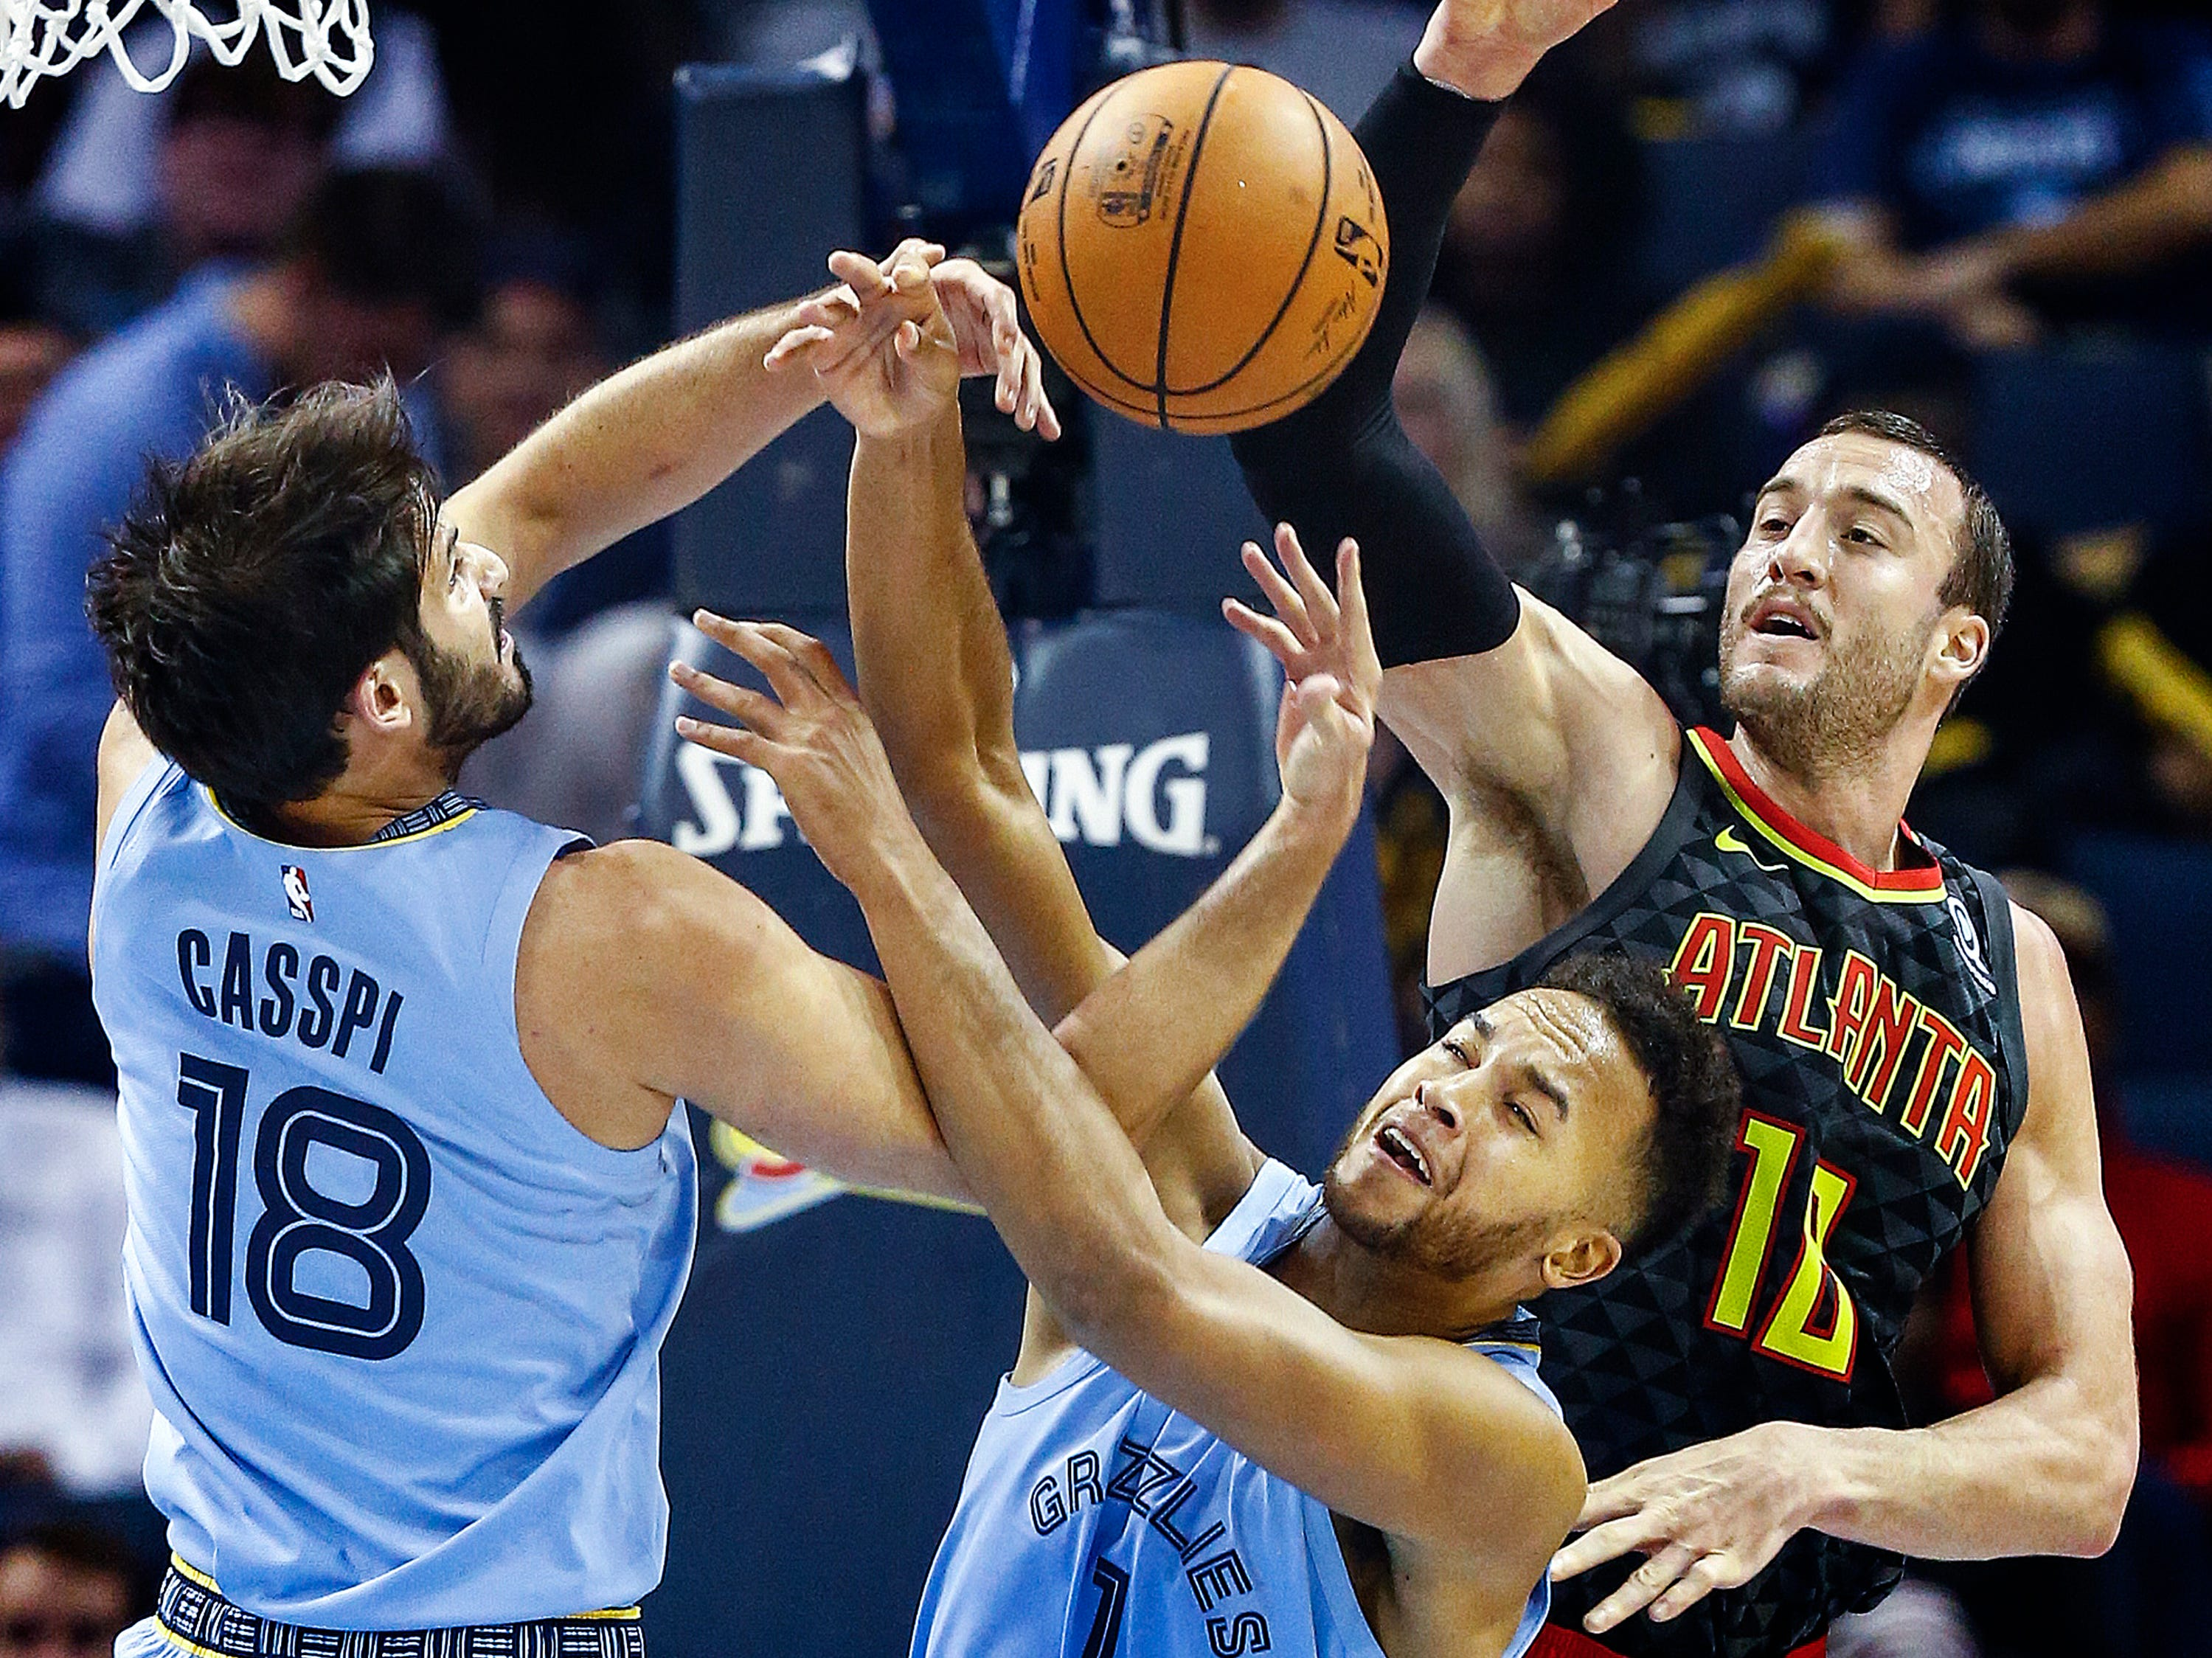 Memphis Grizzlies teammates Omri Casspi (left) and Kyle Anderson (middle) grab a rebound in front of Atlanta Hawks's Miles Plumlee (right) during action of their home-opener at the FedExForum in Memphis, Tenn., Friday, October 19, 2018.